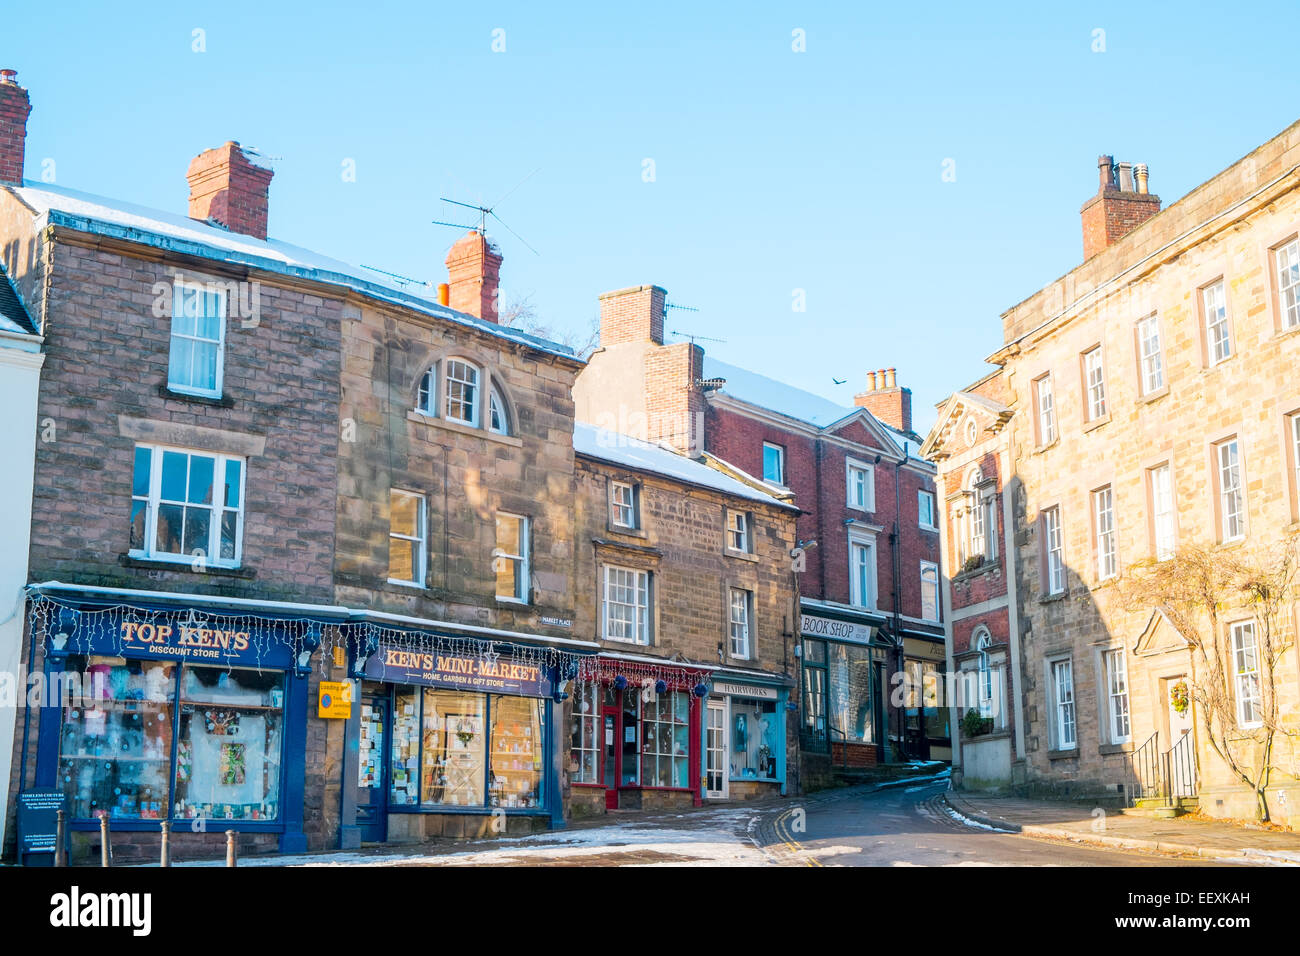 Wirksworth, a market town mentioned in the Doomsday book, Derbyshire Dales,England - Stock Image